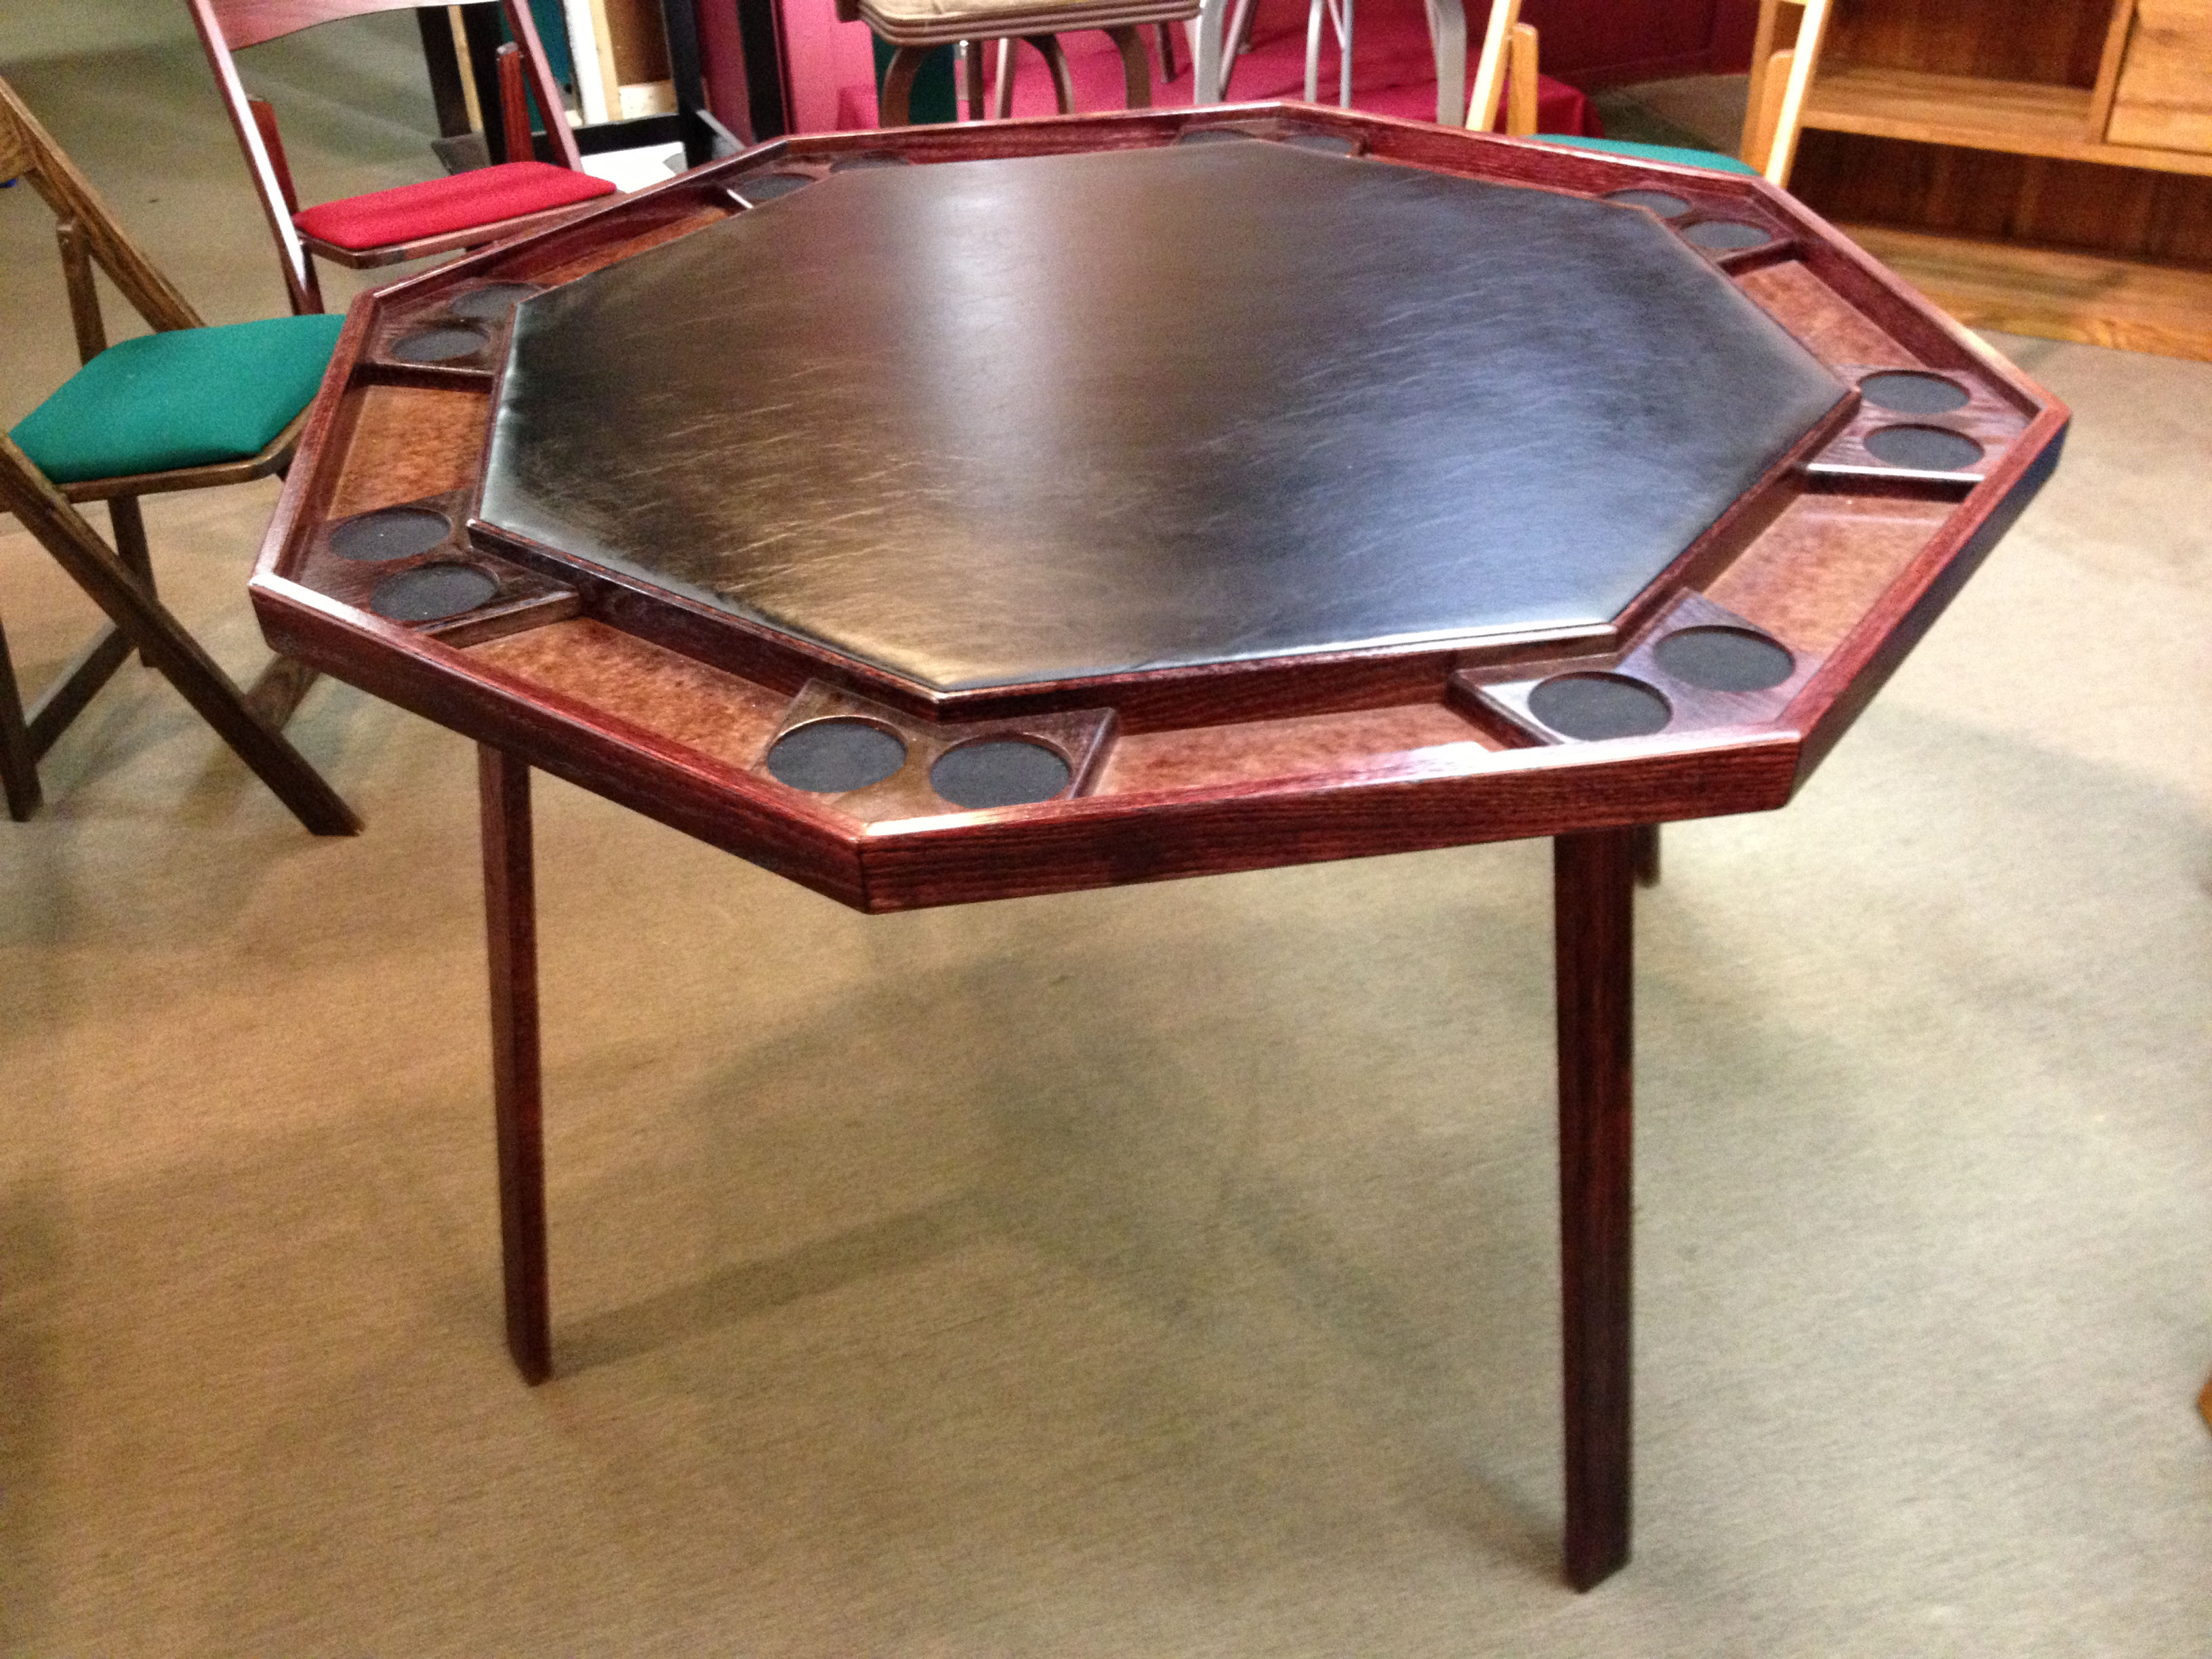 Poker Table With Folding Legs Loria Awards